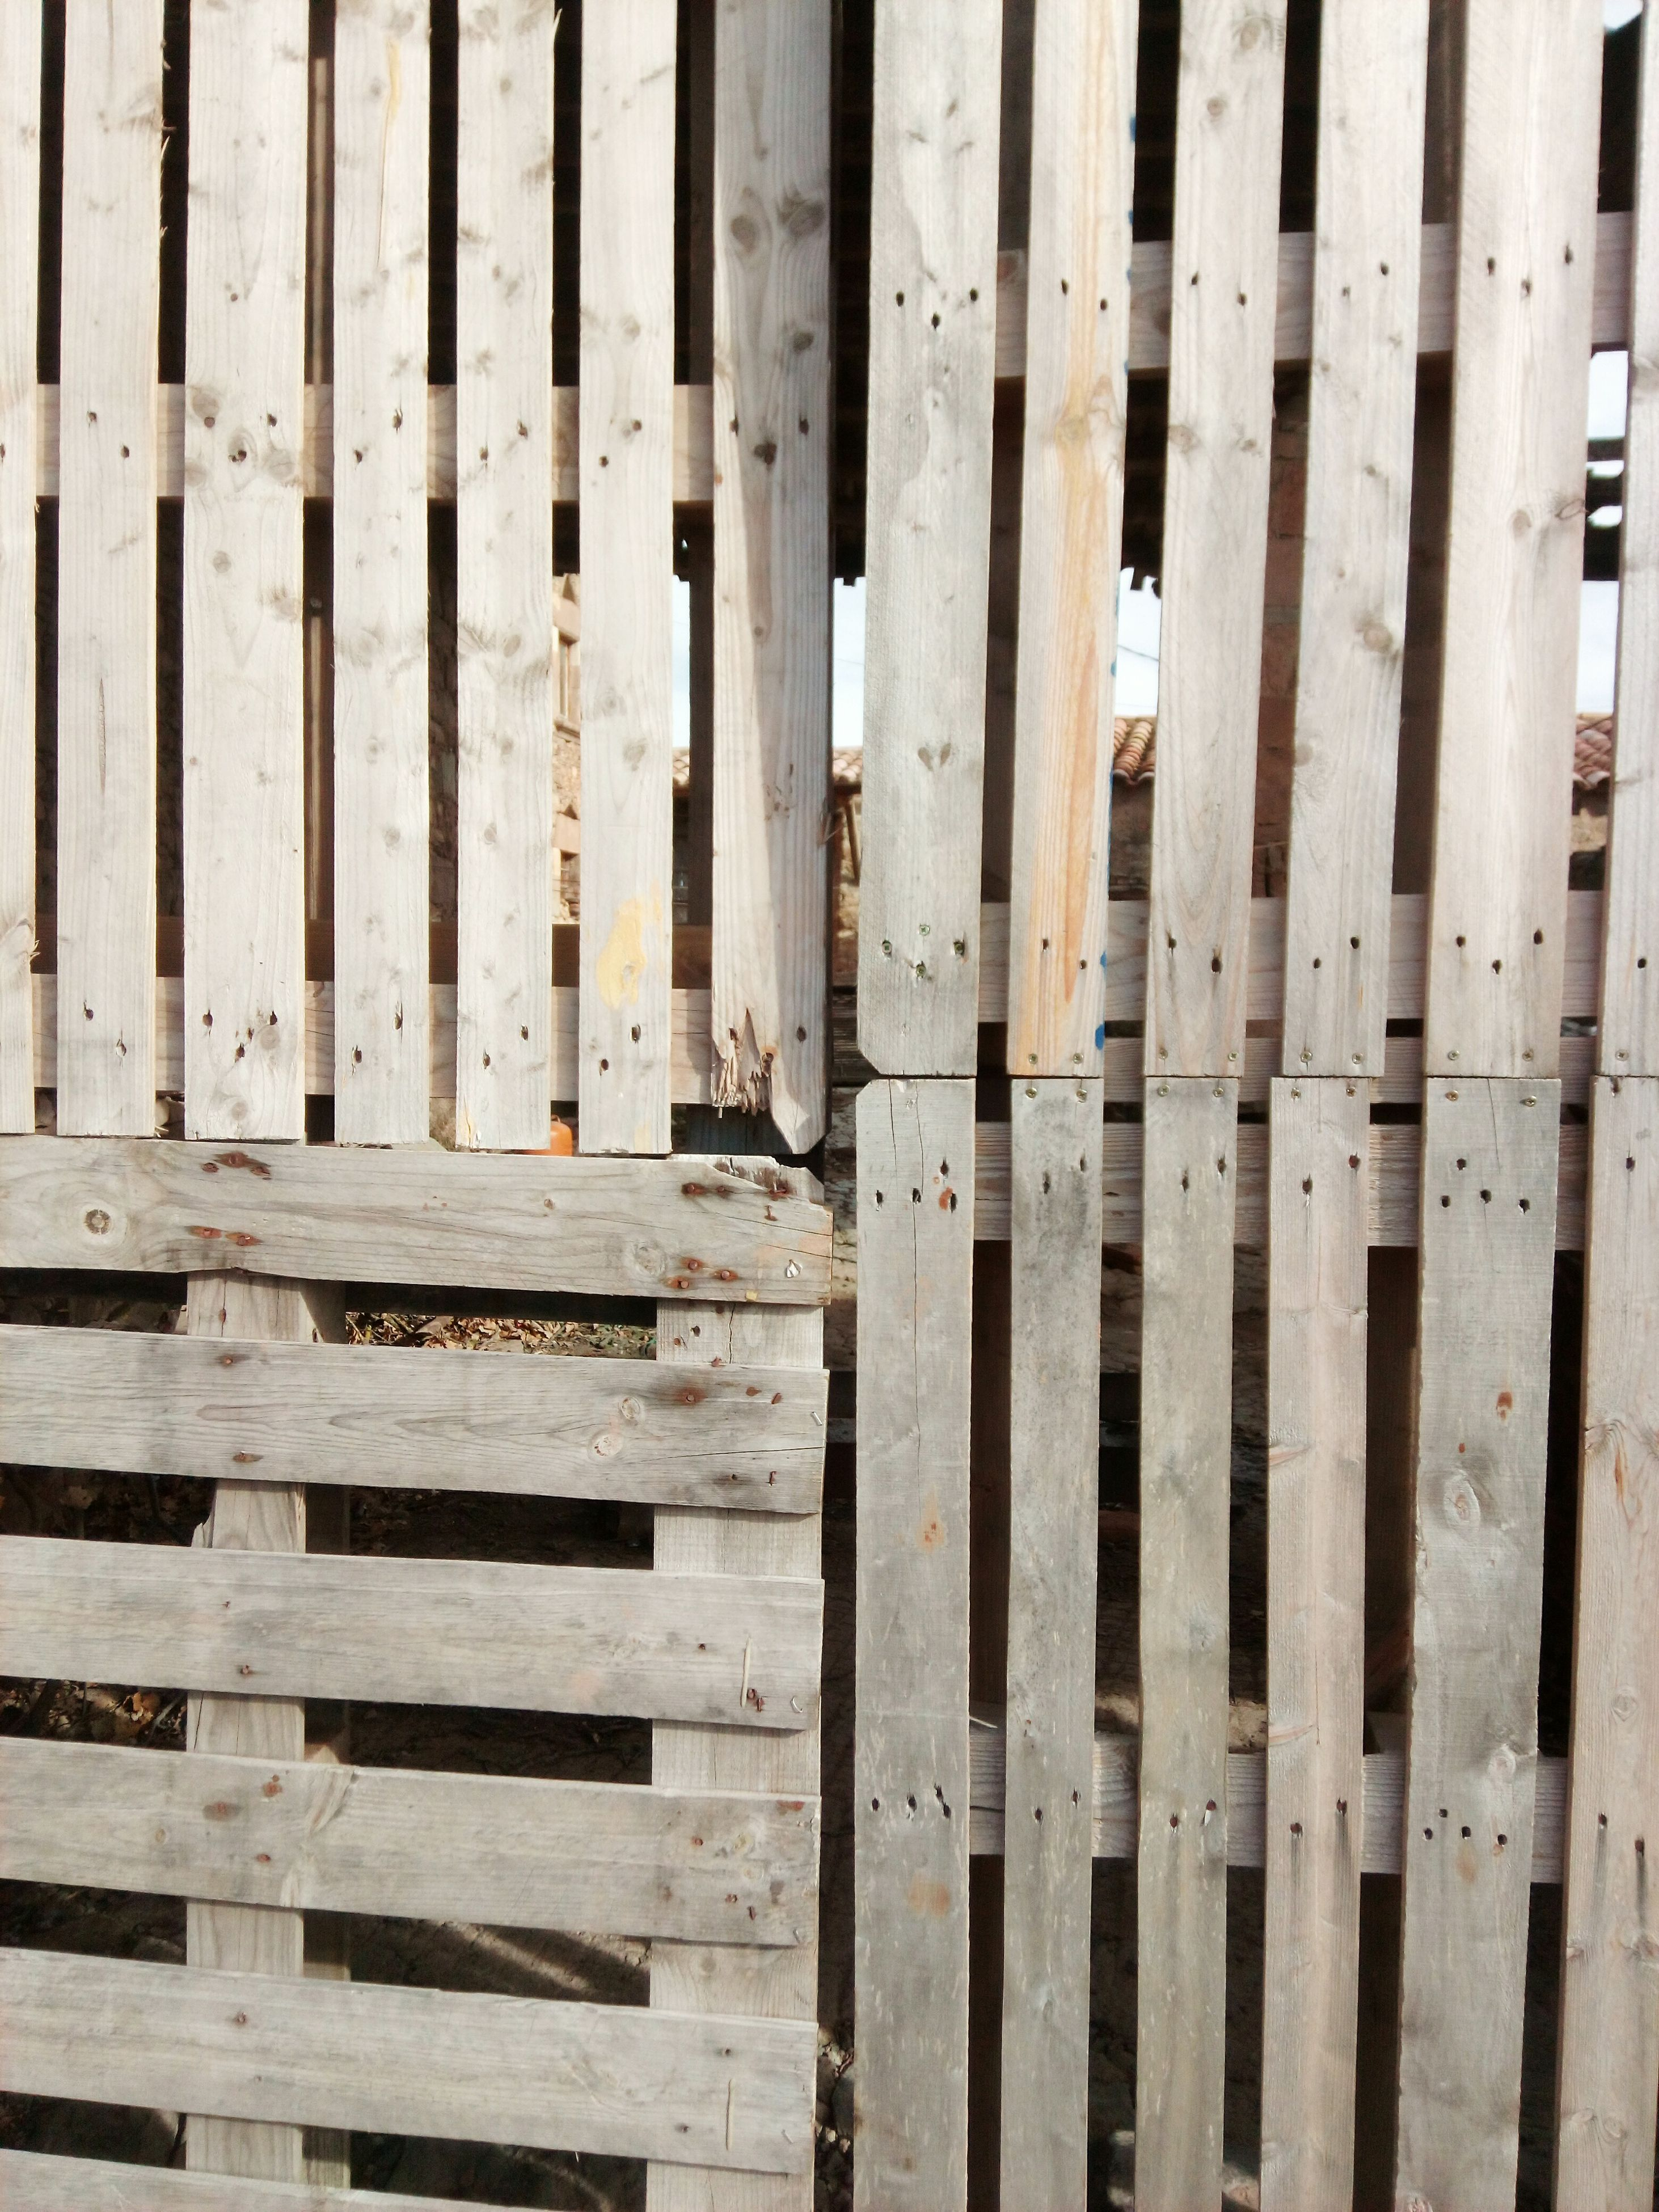 wood - material, plank, backgrounds, full frame, no people, outdoors, picket fence, day